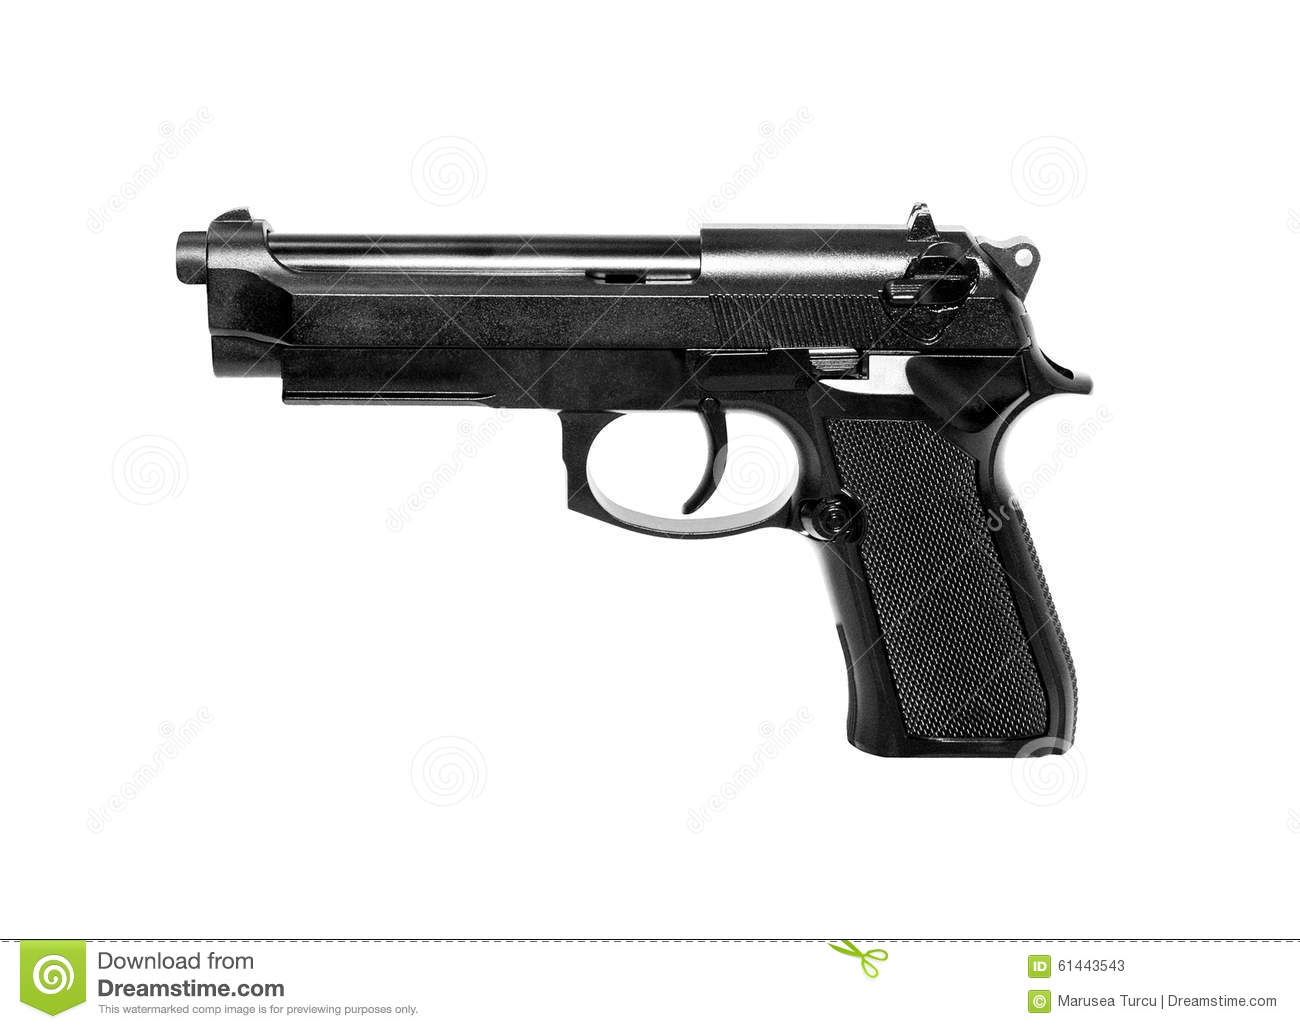 gun white background - photo #7